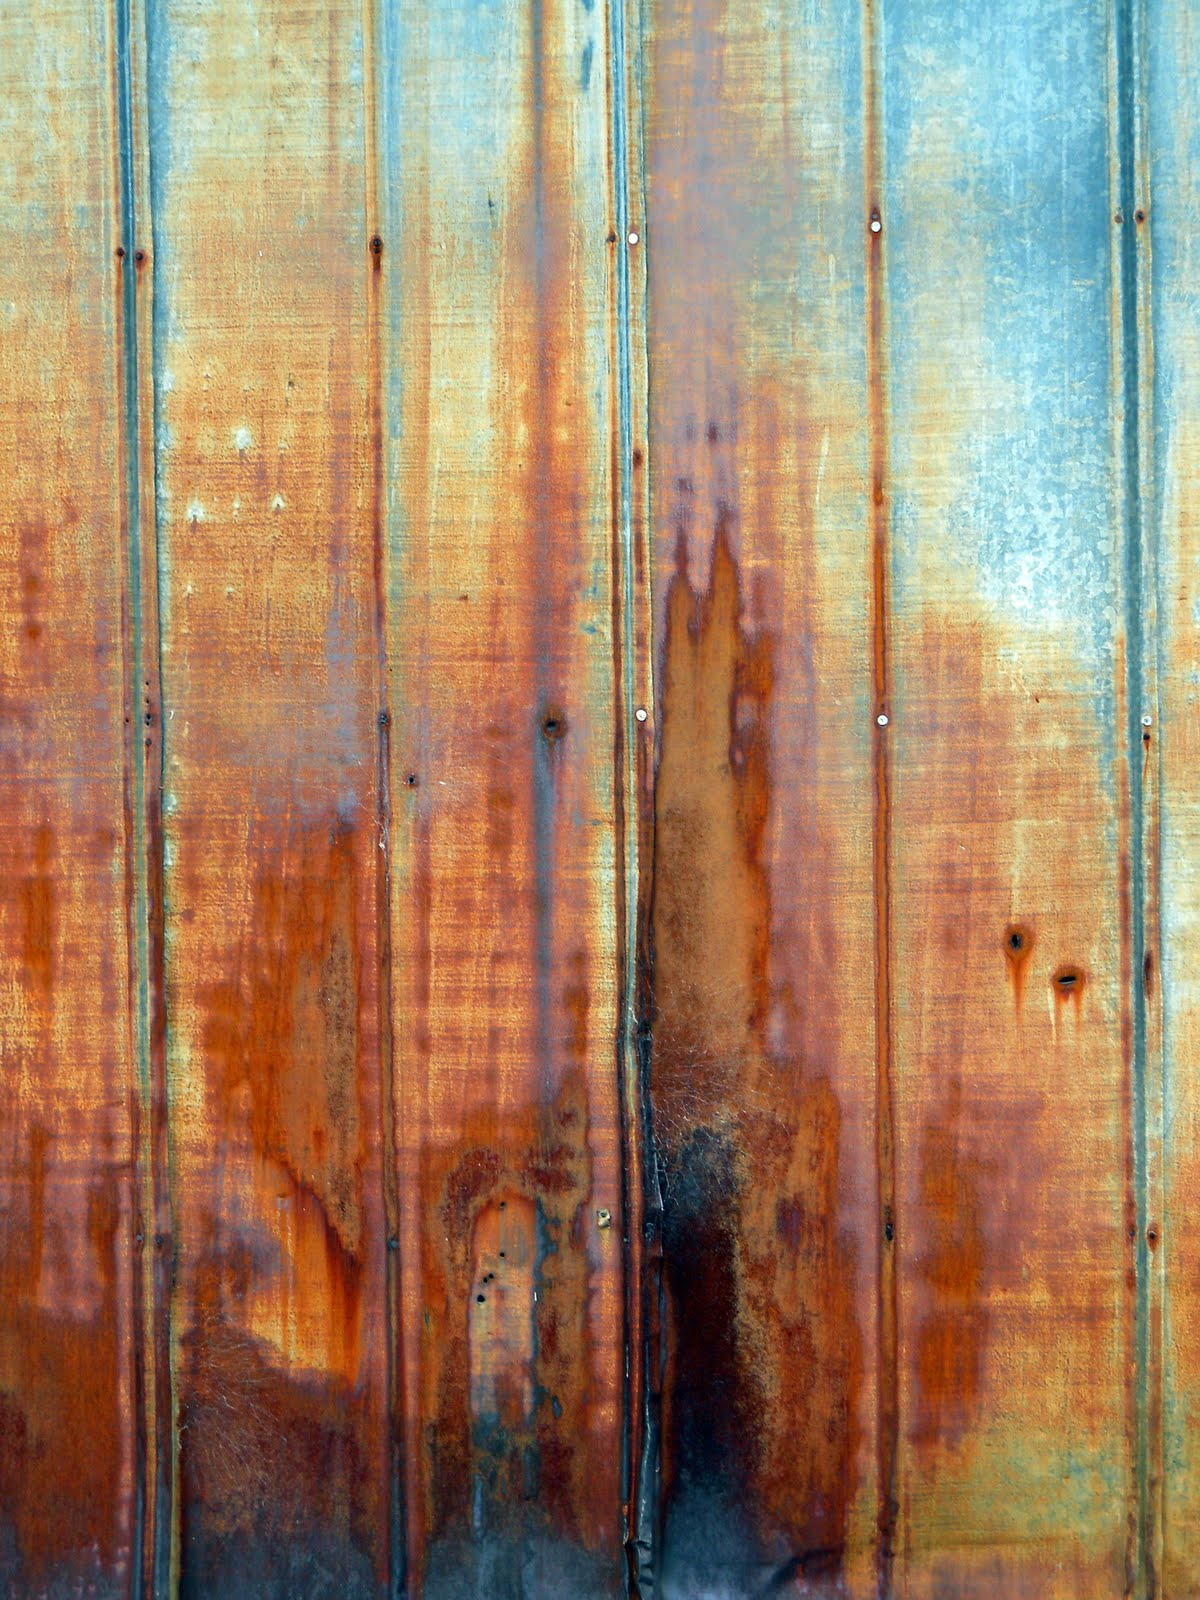 The Last Door Down The Hall Some Grungy Textures From